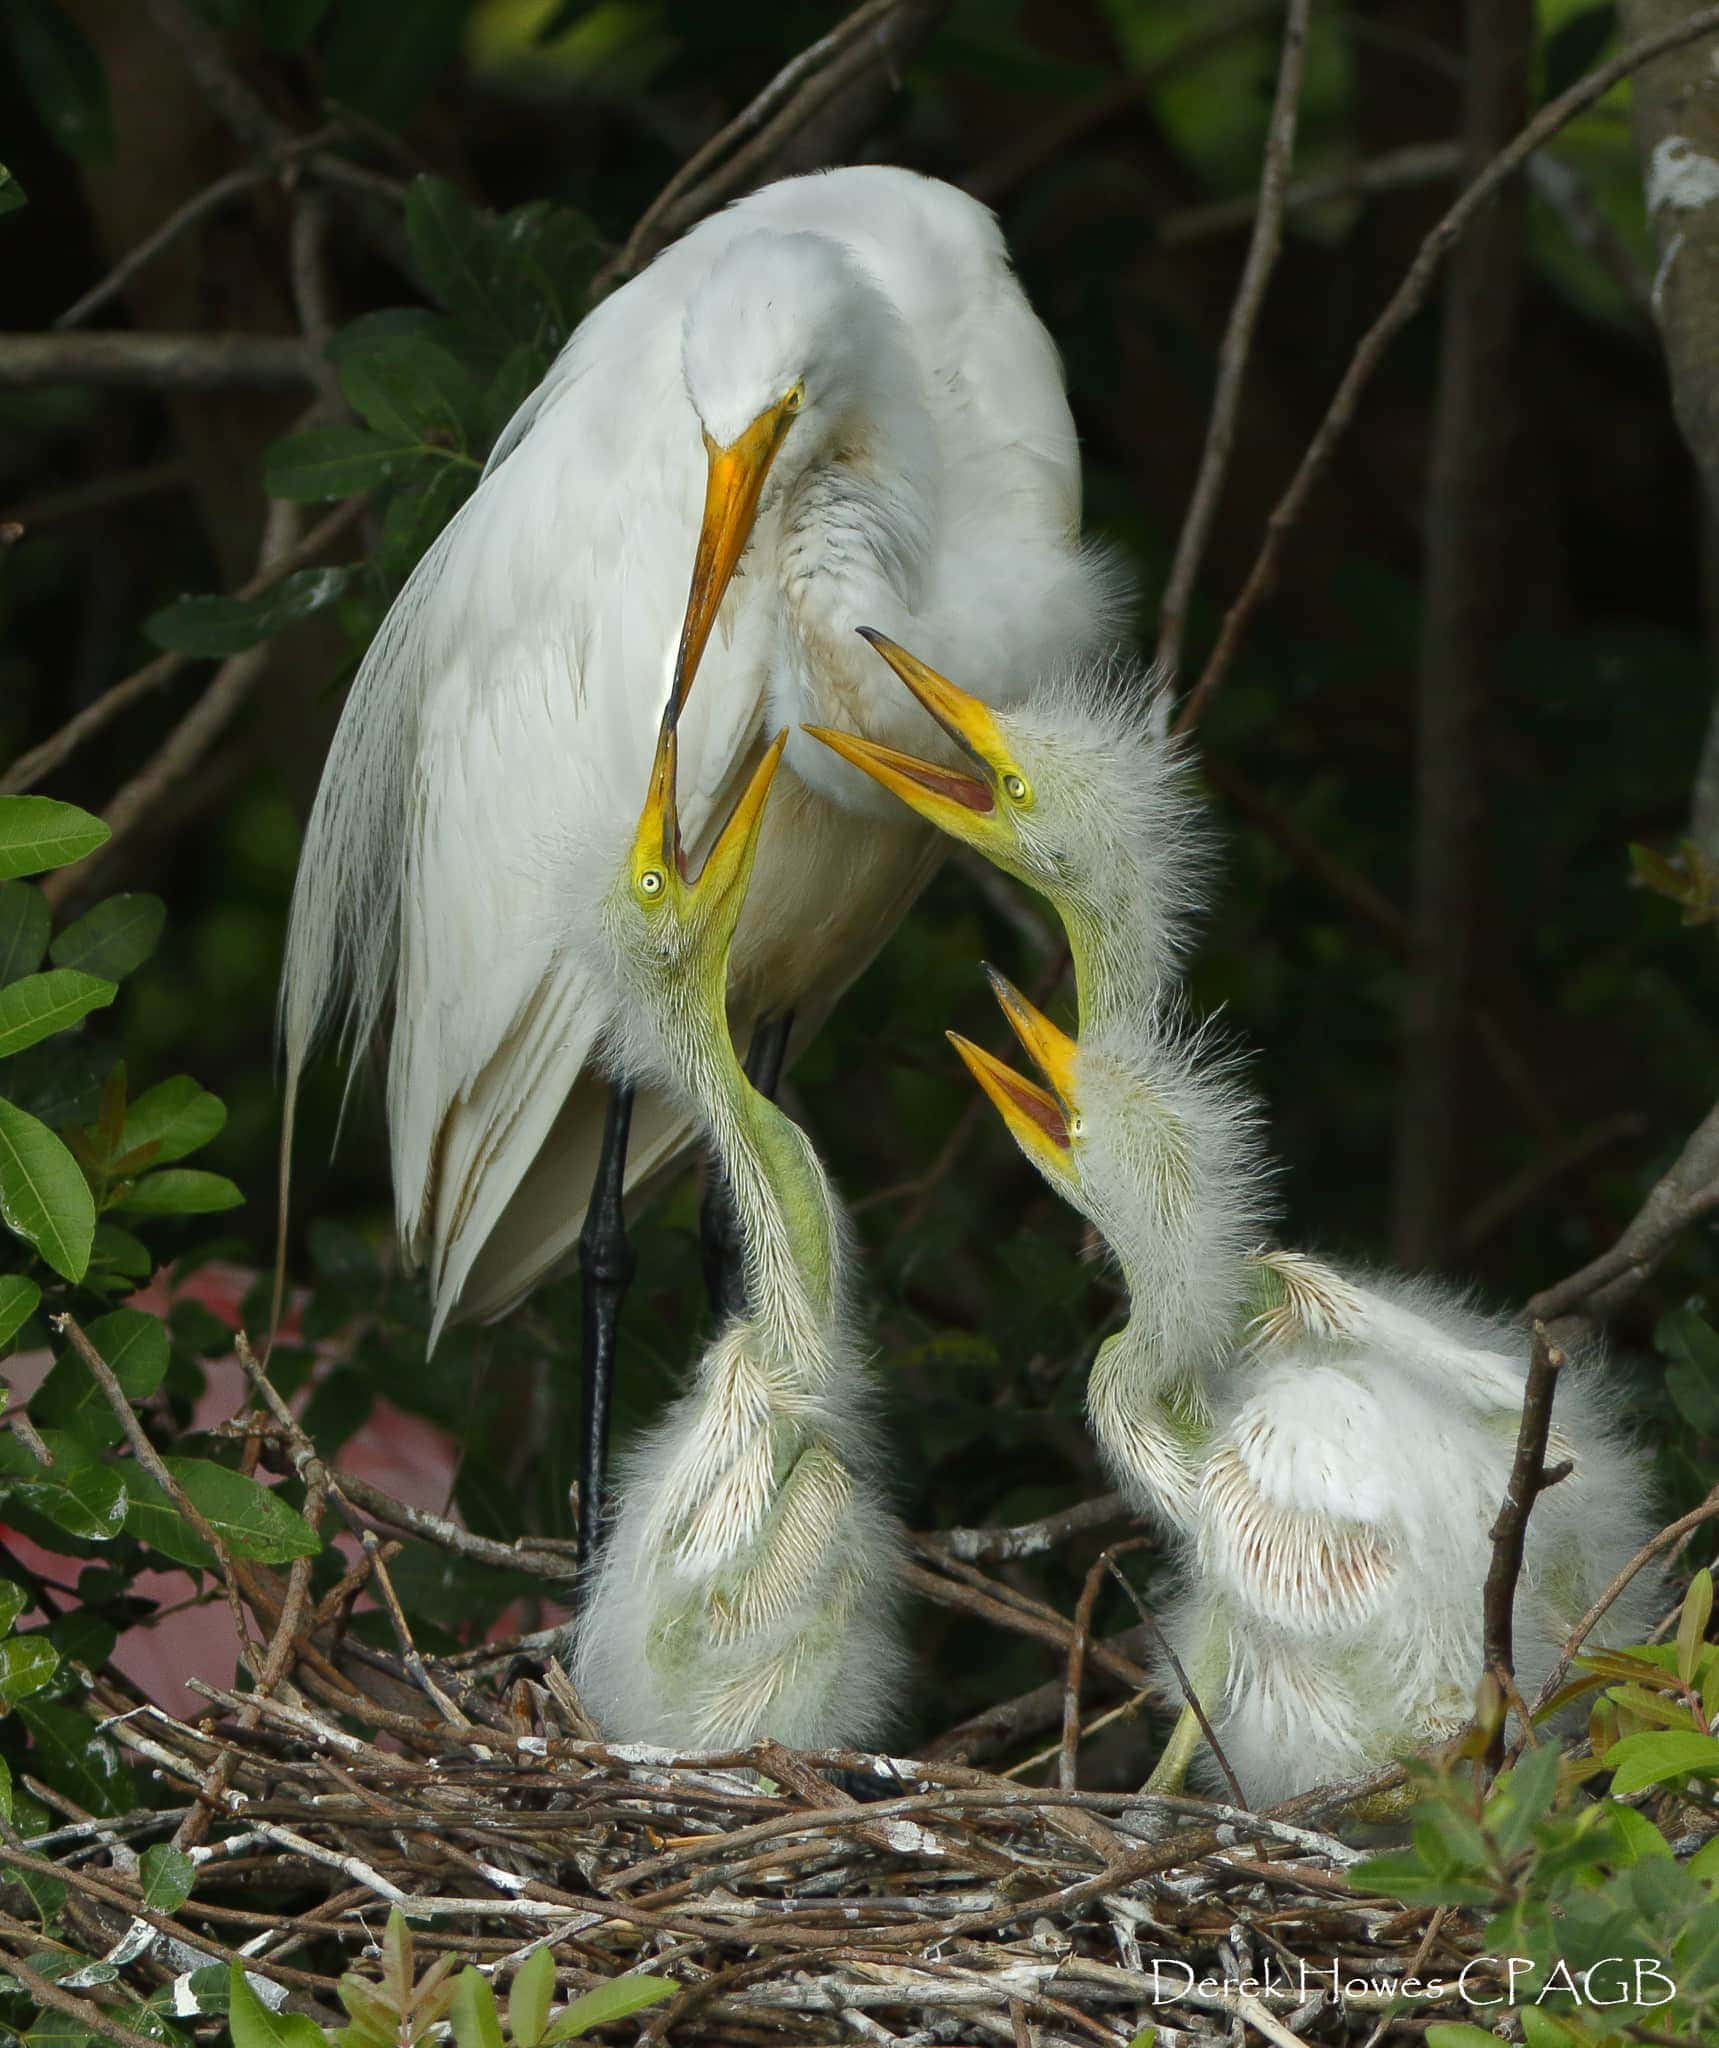 An egret feeds her young in the nest, the rookeries that we visited were lined with hundreds of nests - photographed on the NaturesLens Osprey Photography Holiday conducted in Florida during April 2016